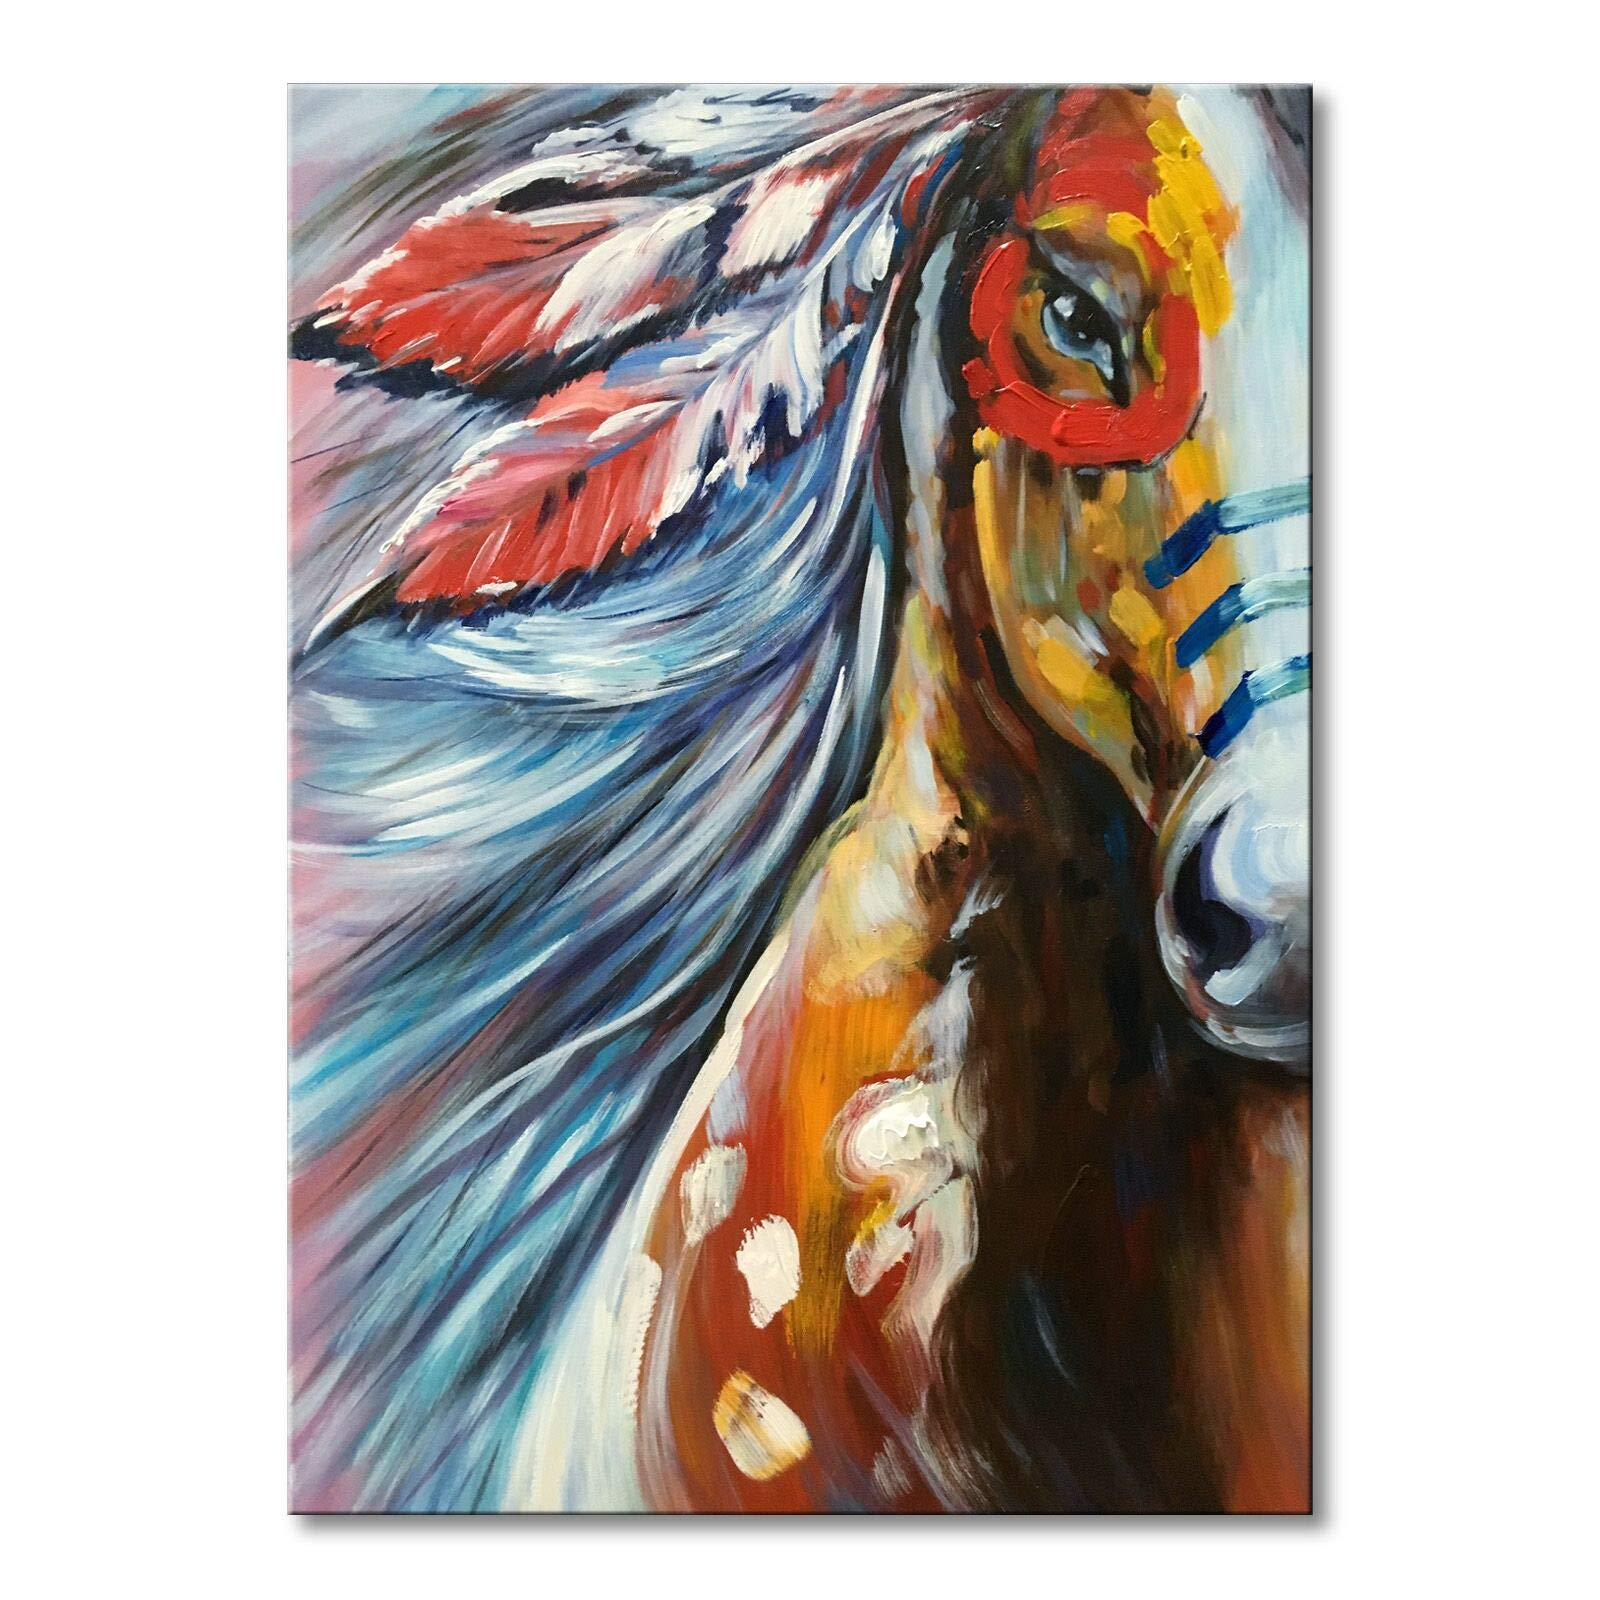 Hand Painted Modern Horse Oil Painting on Canvas Handmade Abstract Animal Wall Art for Decor (Horse, 24x36 inch)